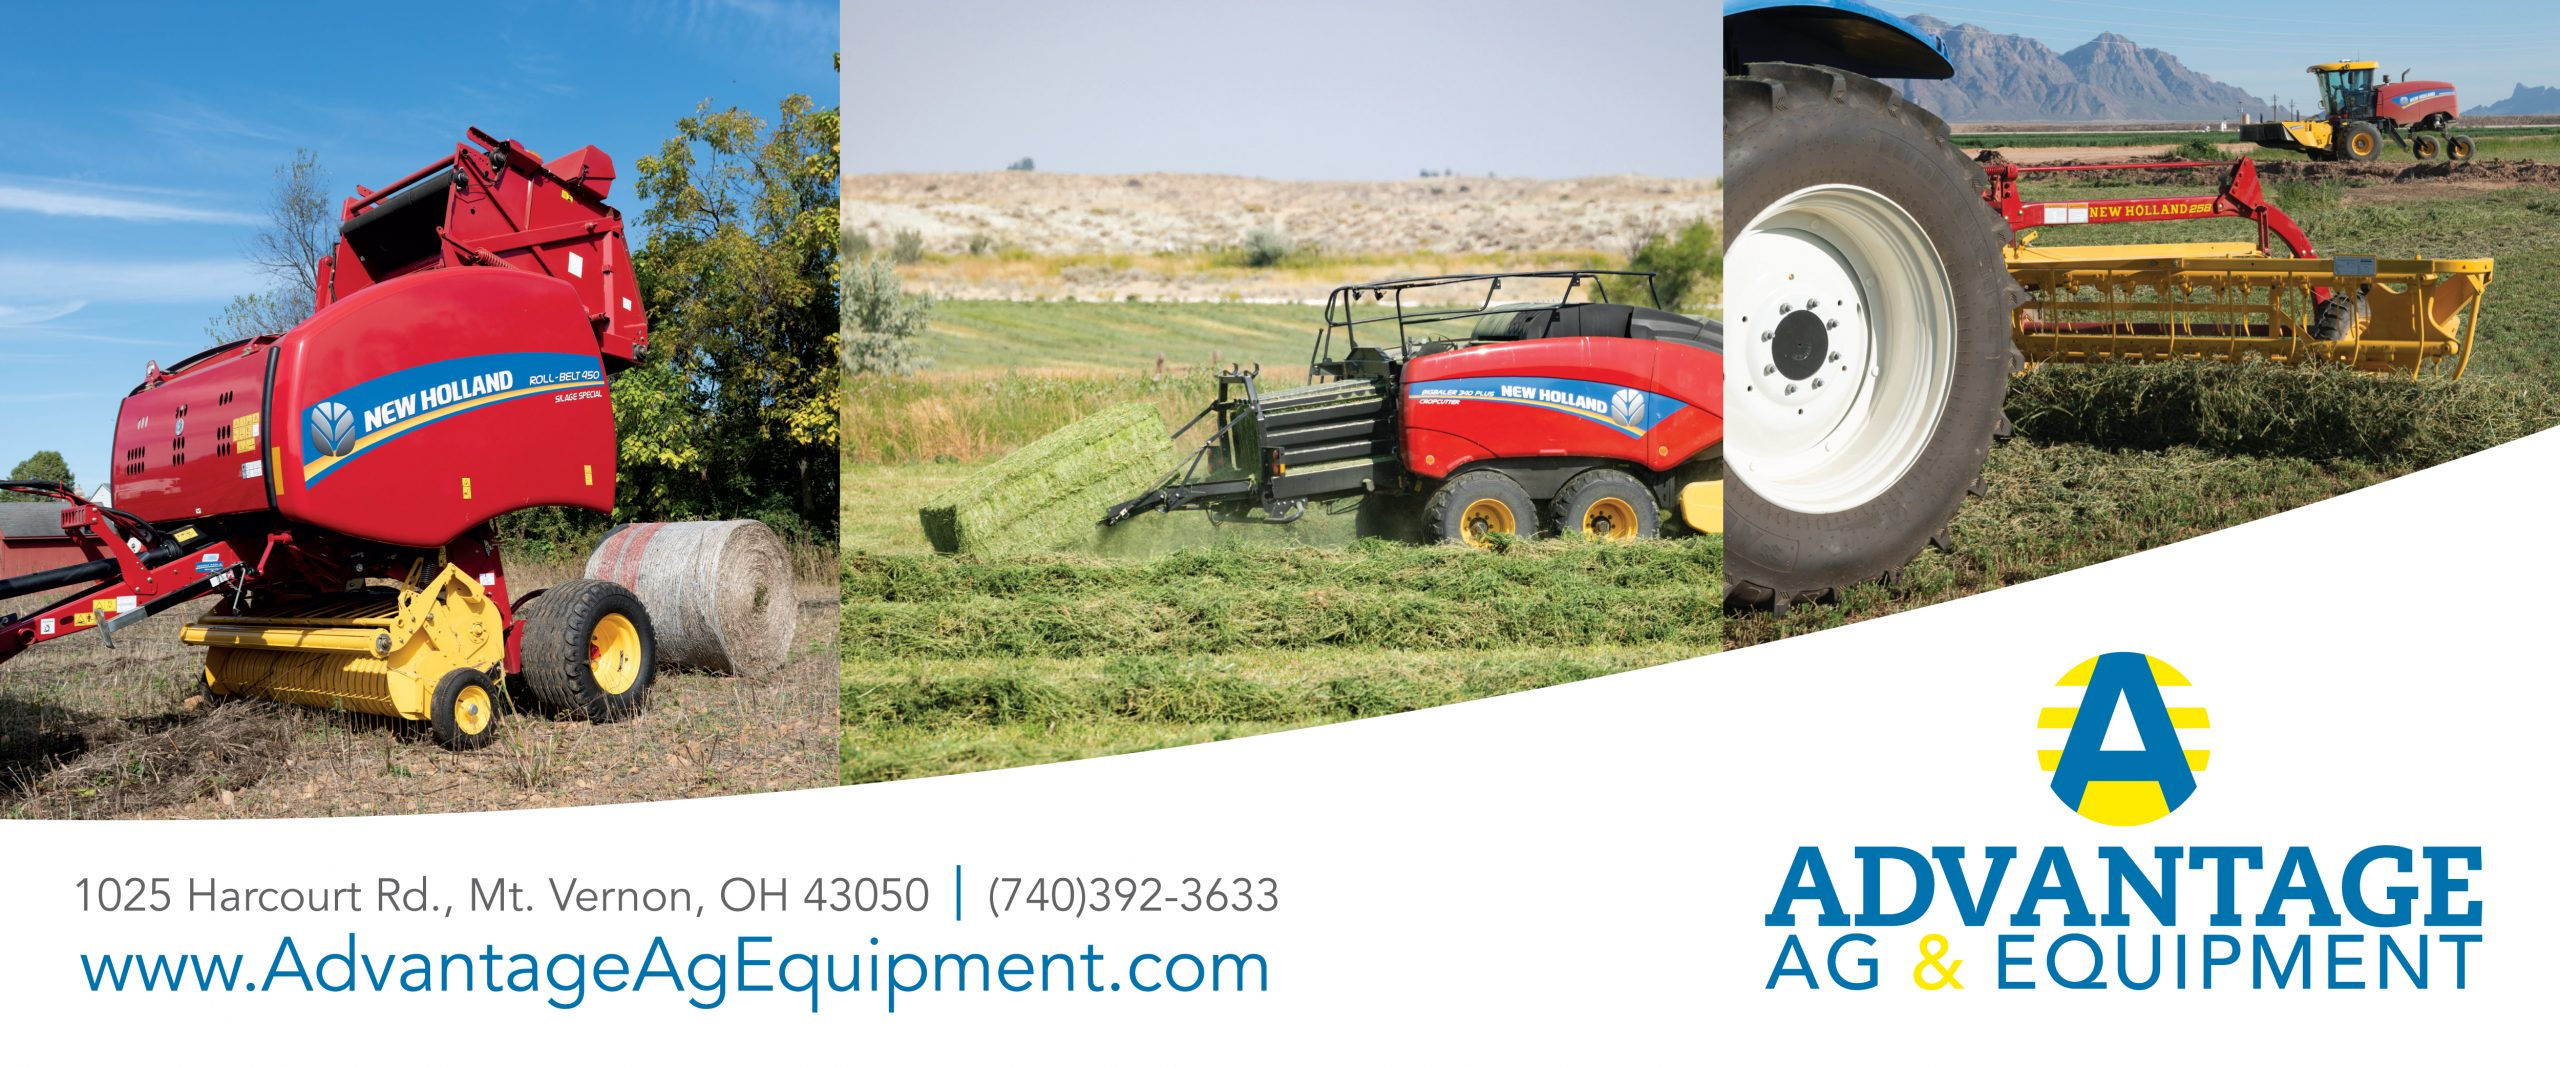 Advantage Ag & Equipment